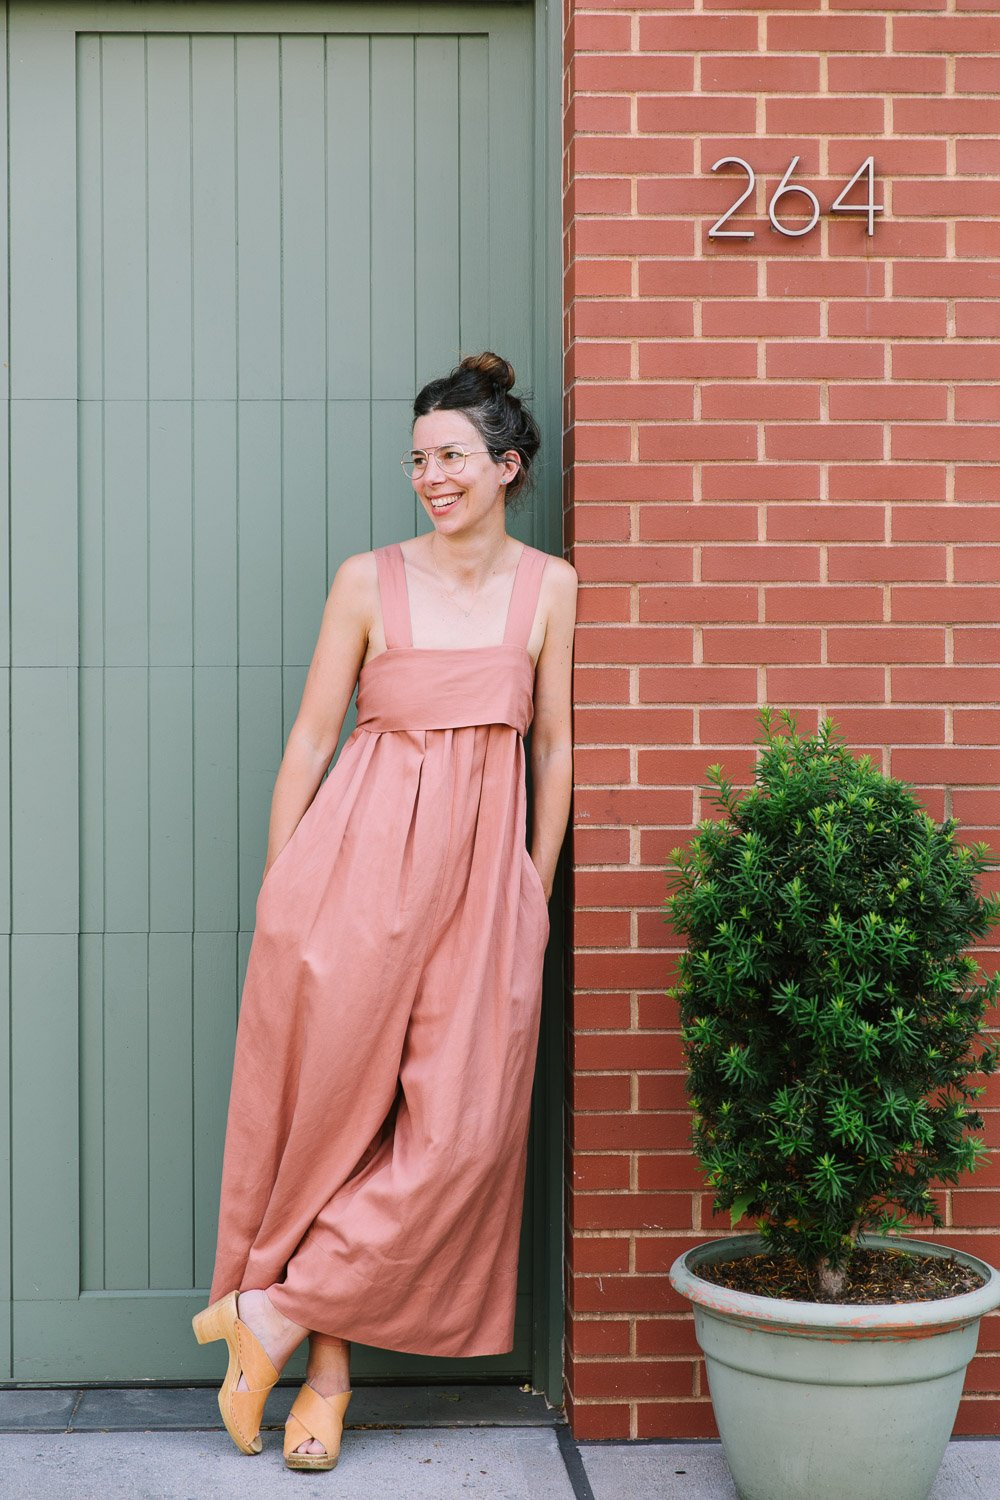 A Week of Outfits: Jamie Erickson